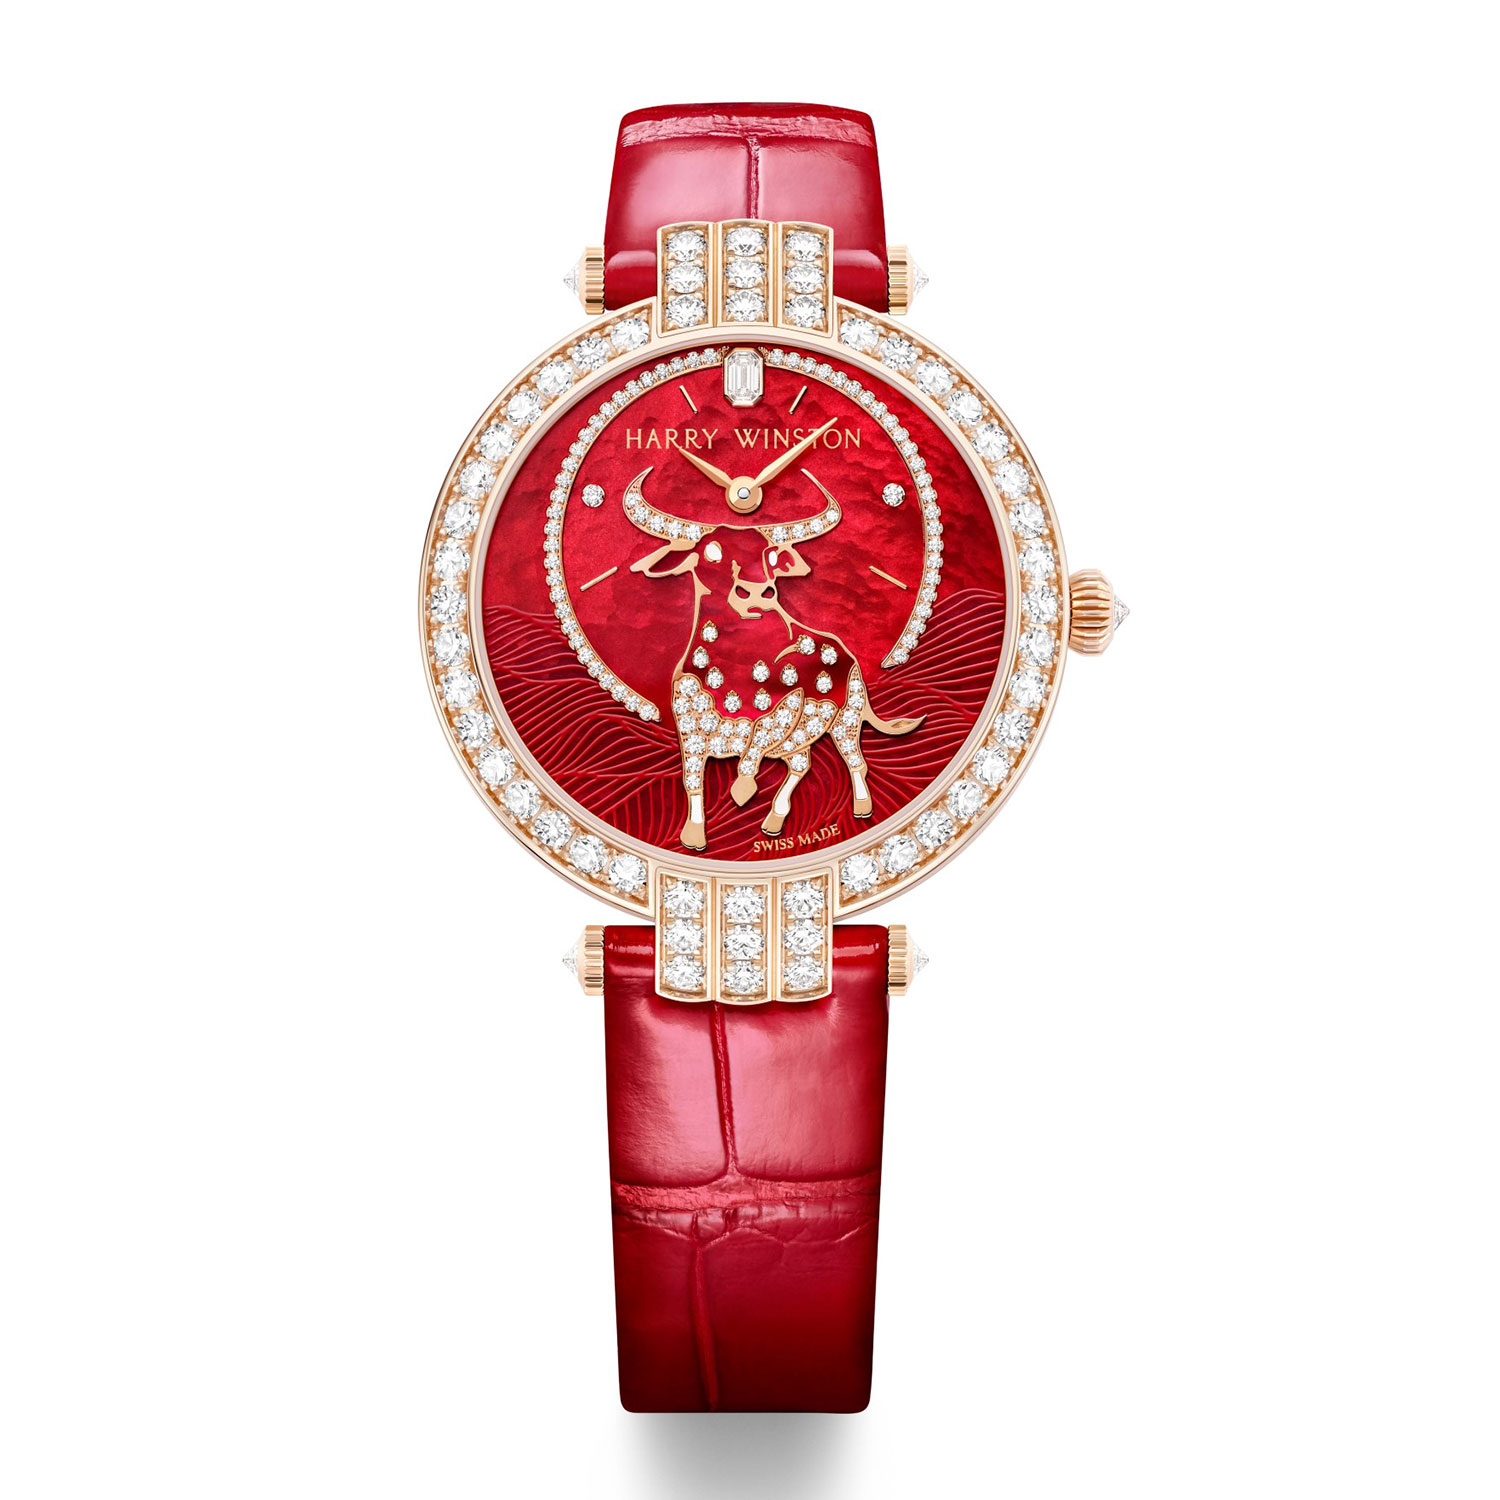 Đồng hồ Tết 2021: Harry Winston Premier Chinese New Year Automatic 36mm